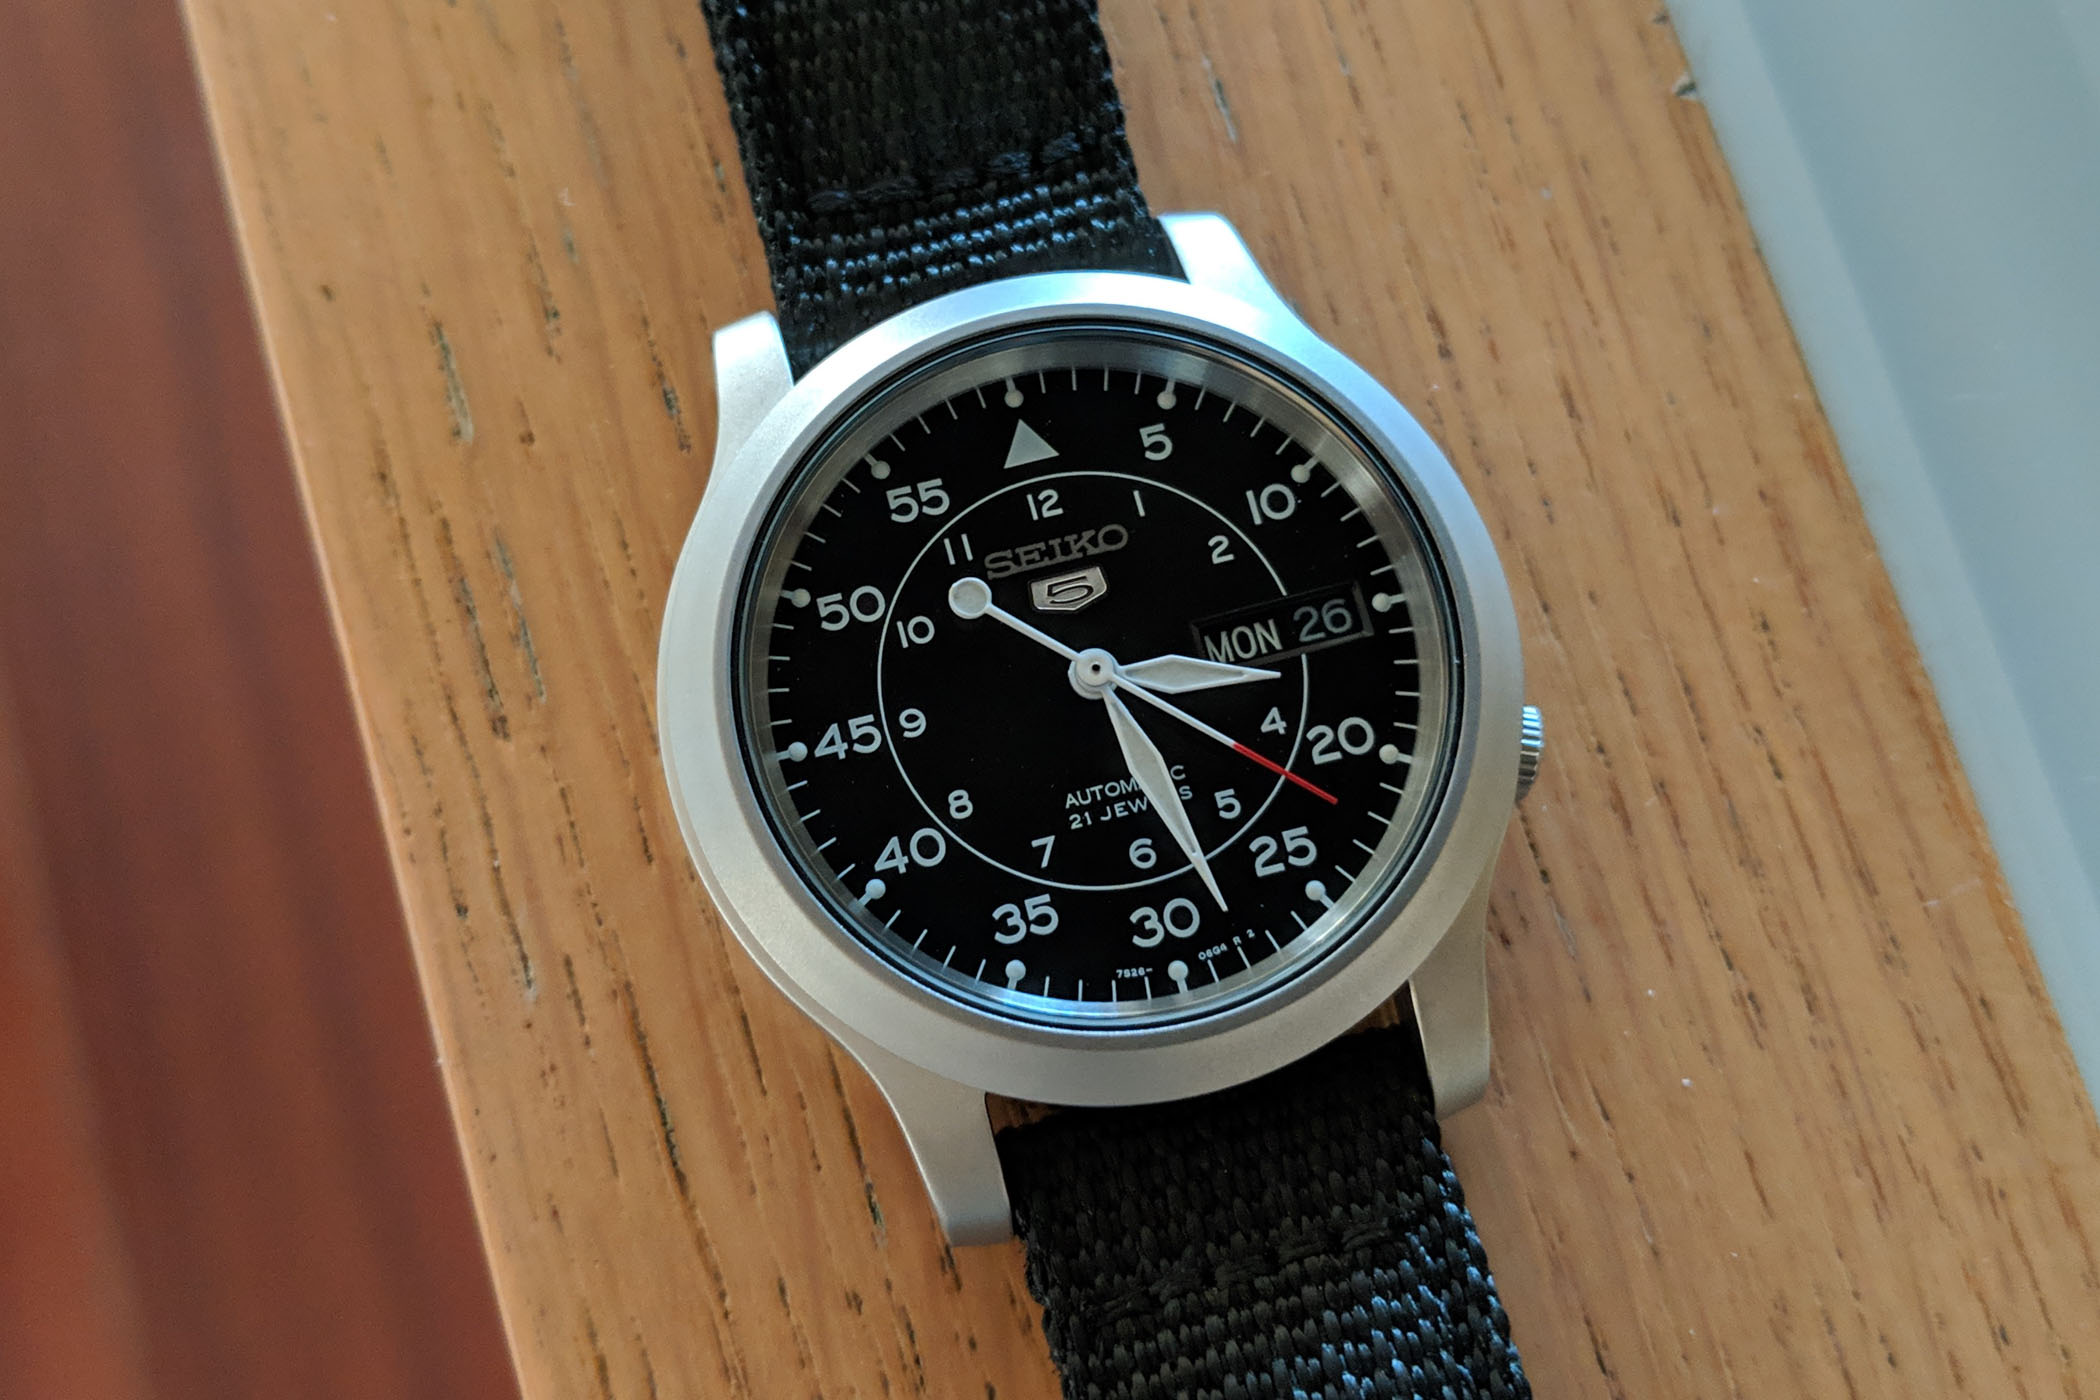 Review Of Seiko 5 Snk809 A Lot Of A Mechanical Watch For Less Than